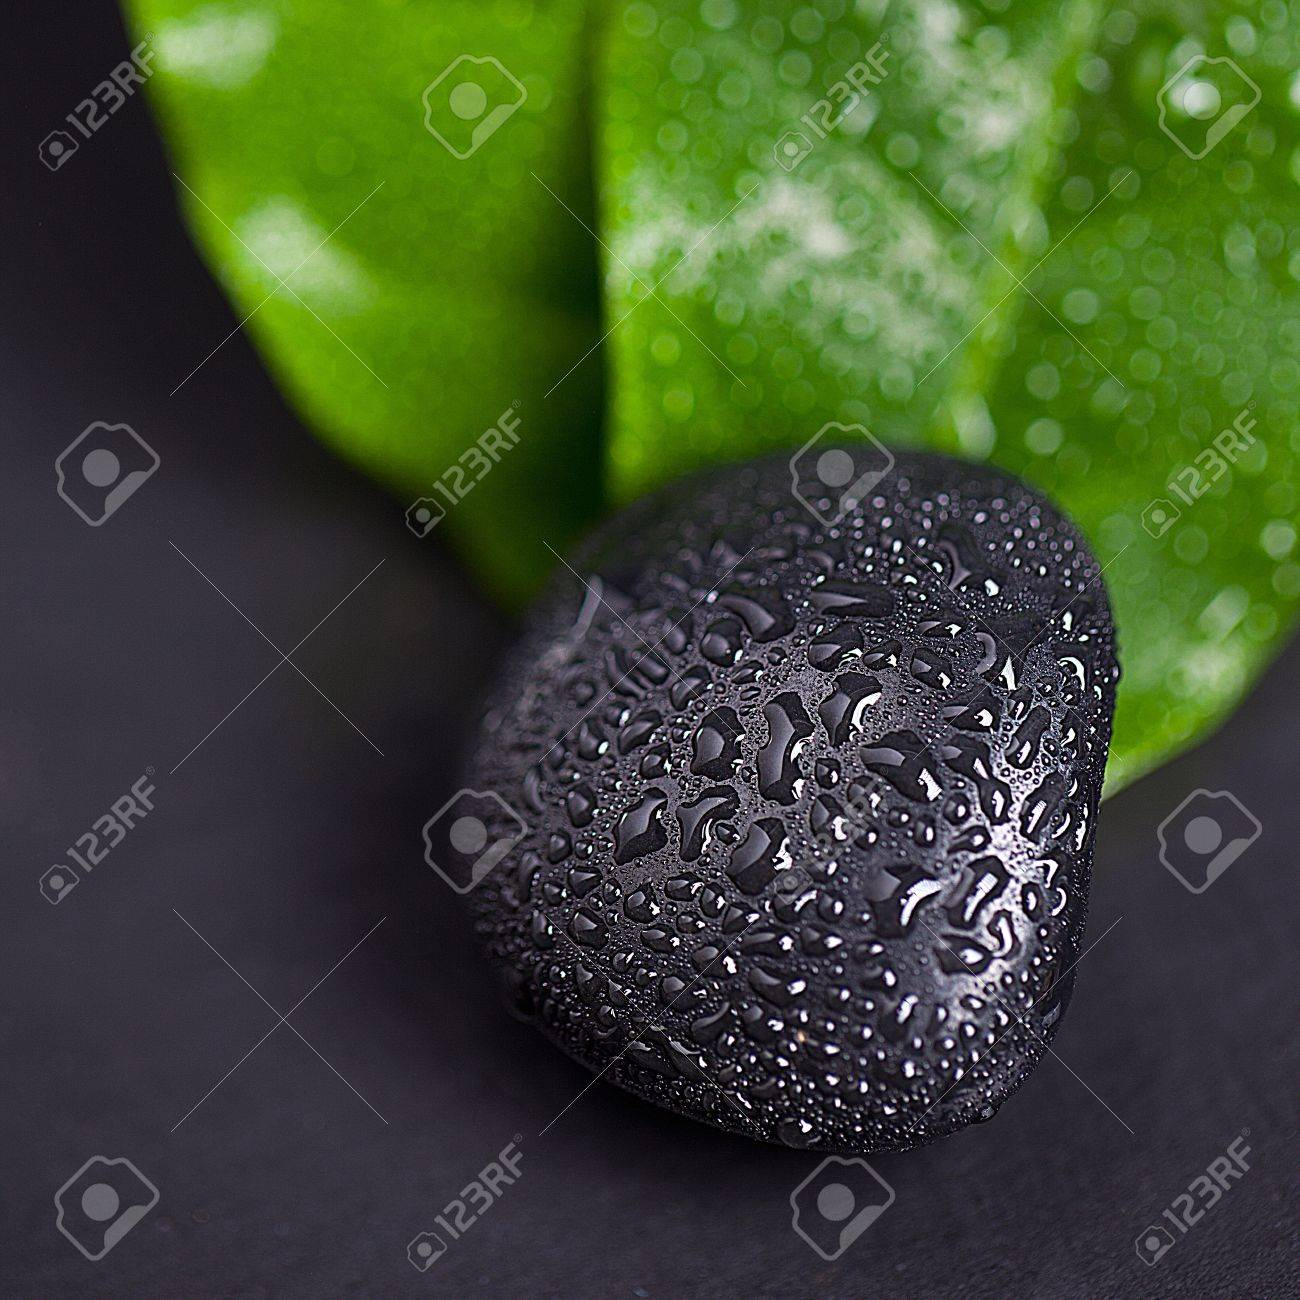 Green leaf and Black Stone with water drops Stock Photo - 12508242